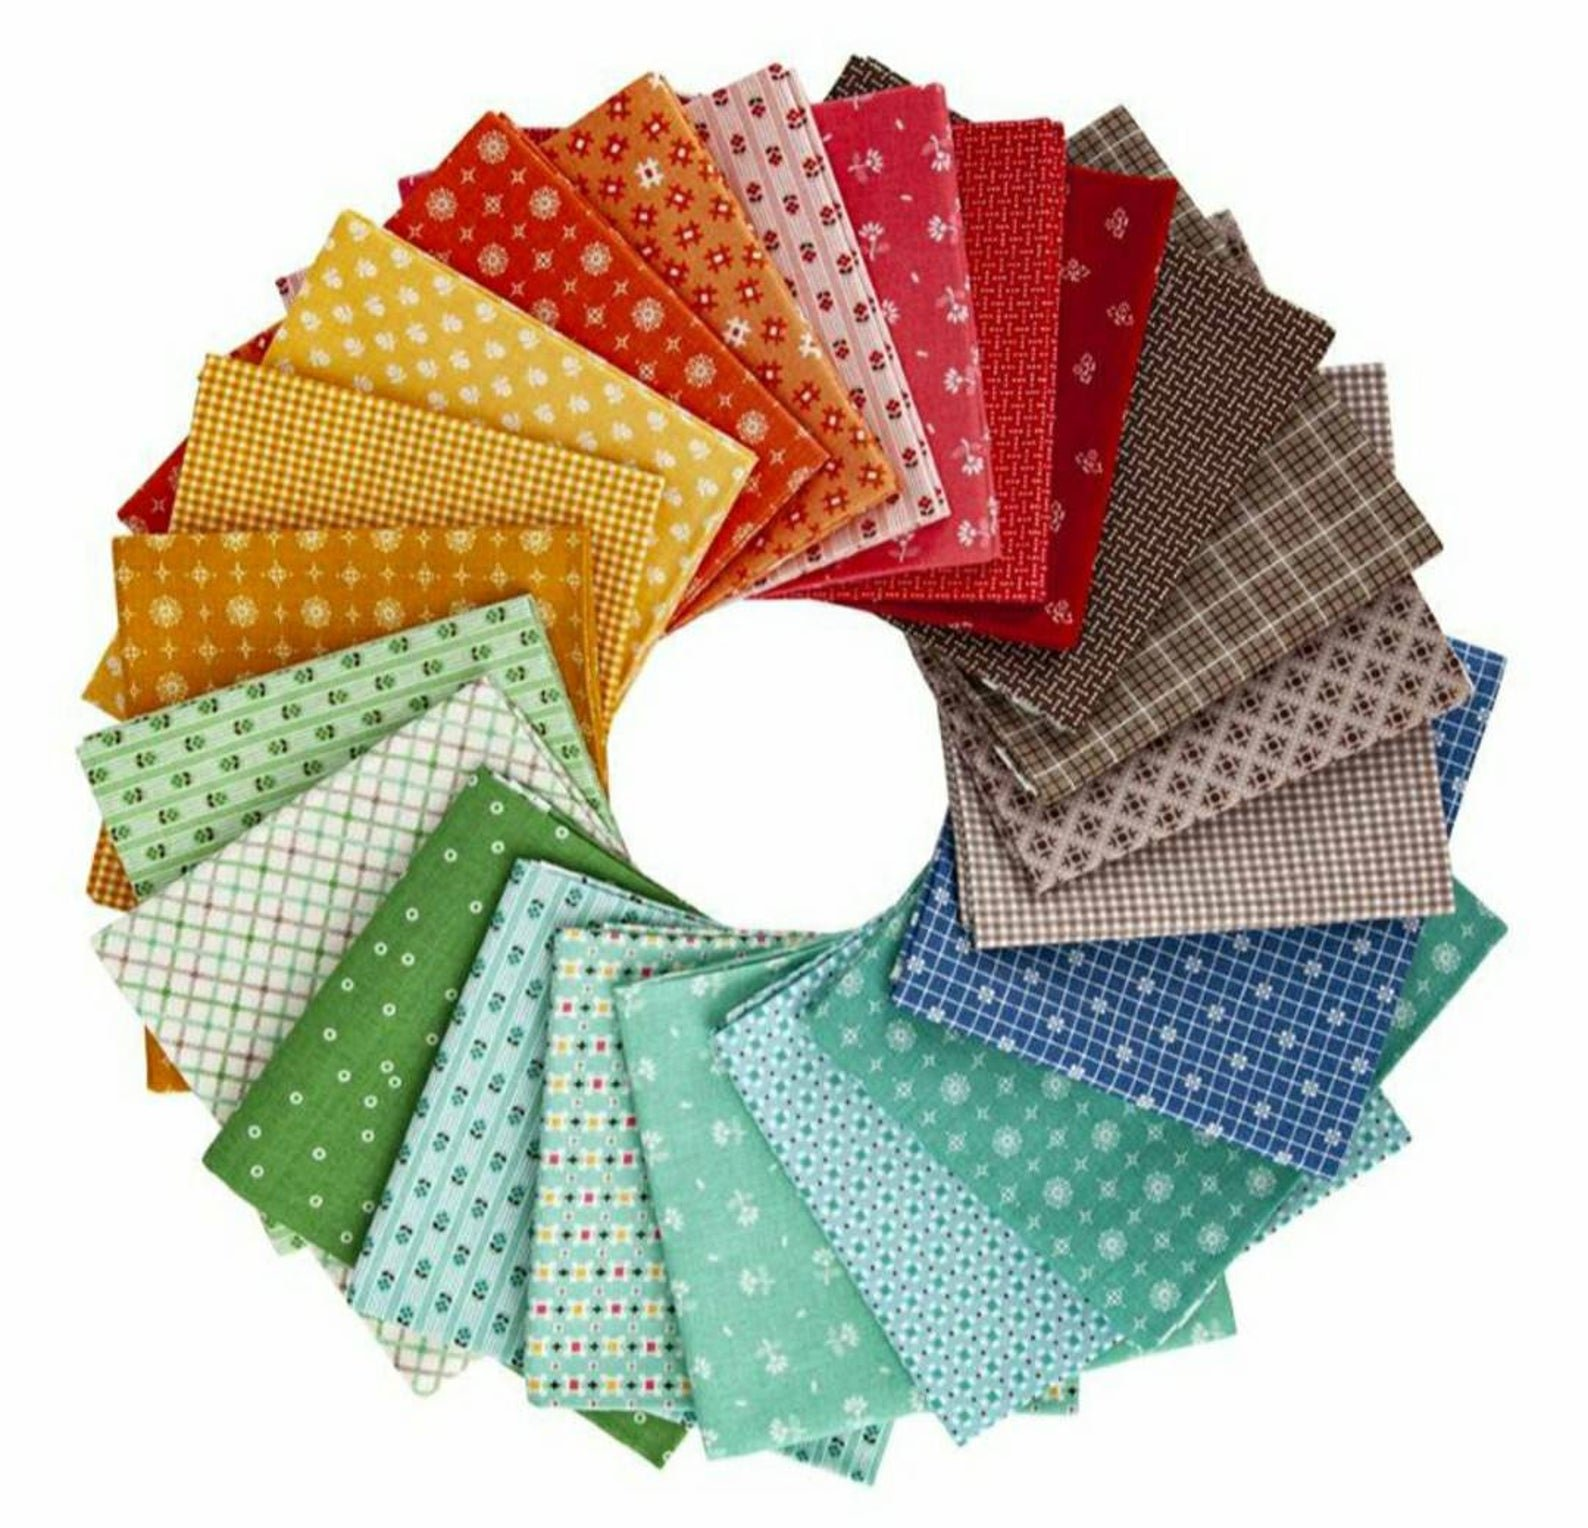 Prim Fat Quarter Bundle - 42pcs